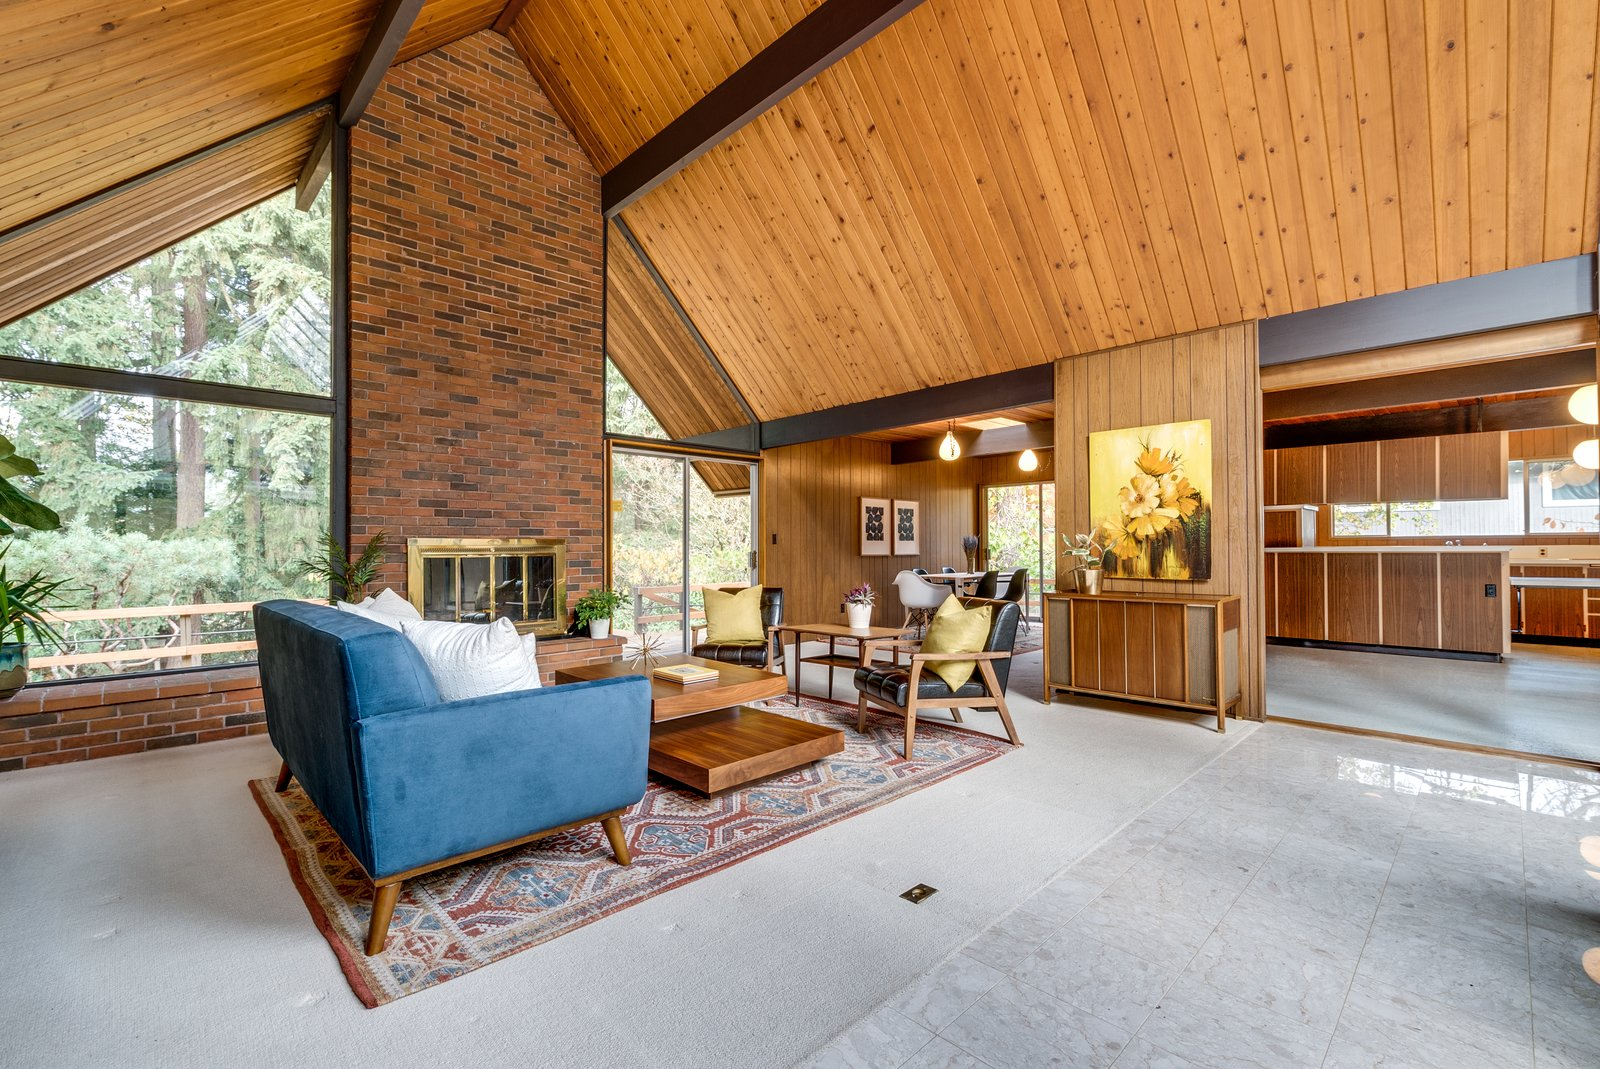 1961 Park Forest Ave living room